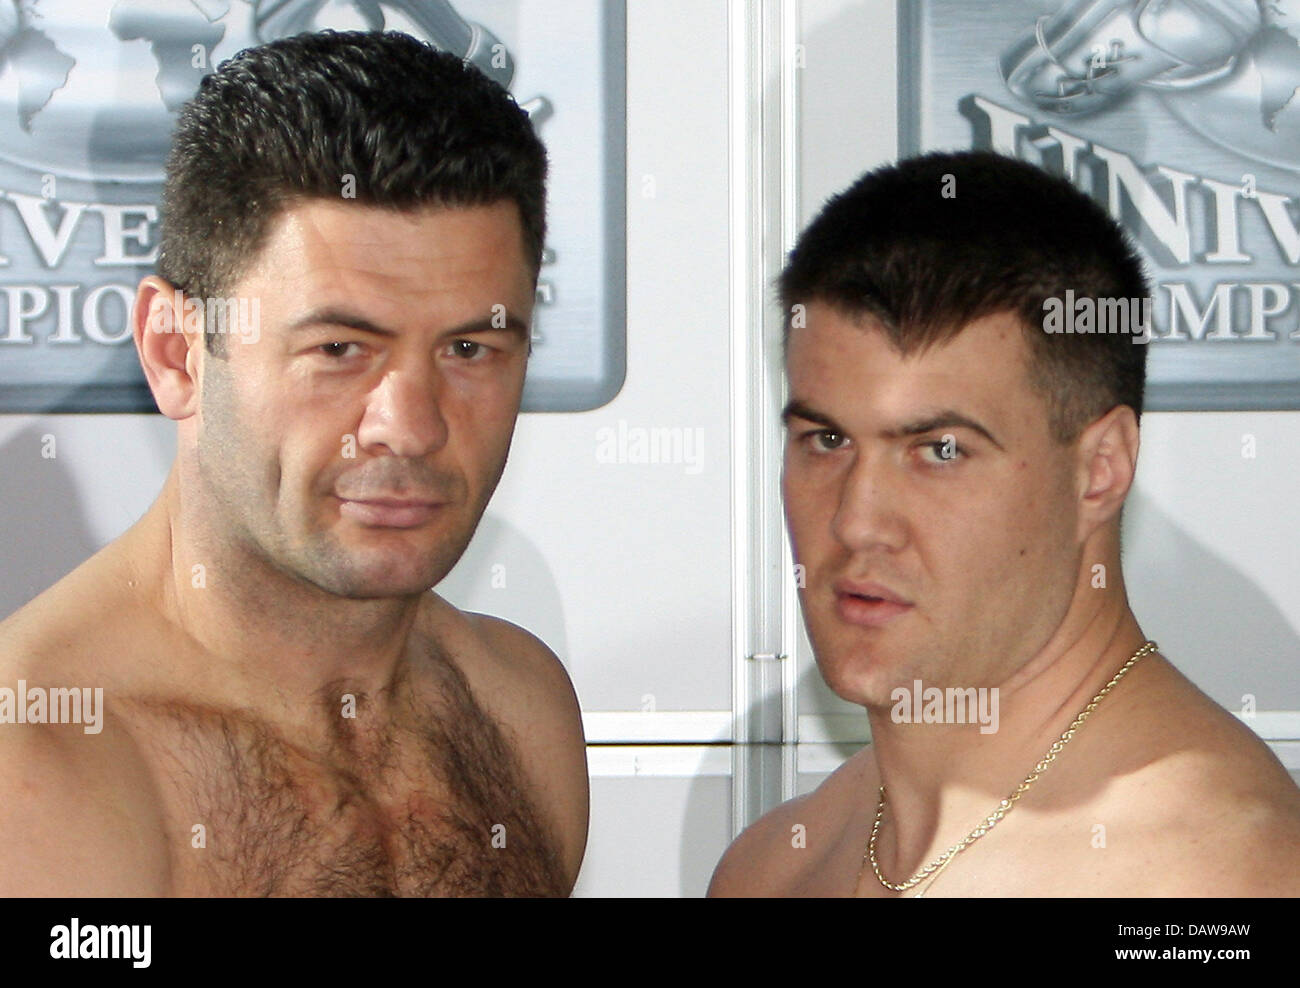 The Two Heavyweight Boxers Luan Krasniqi L From Rottweil And Brian Stock Photo Alamy